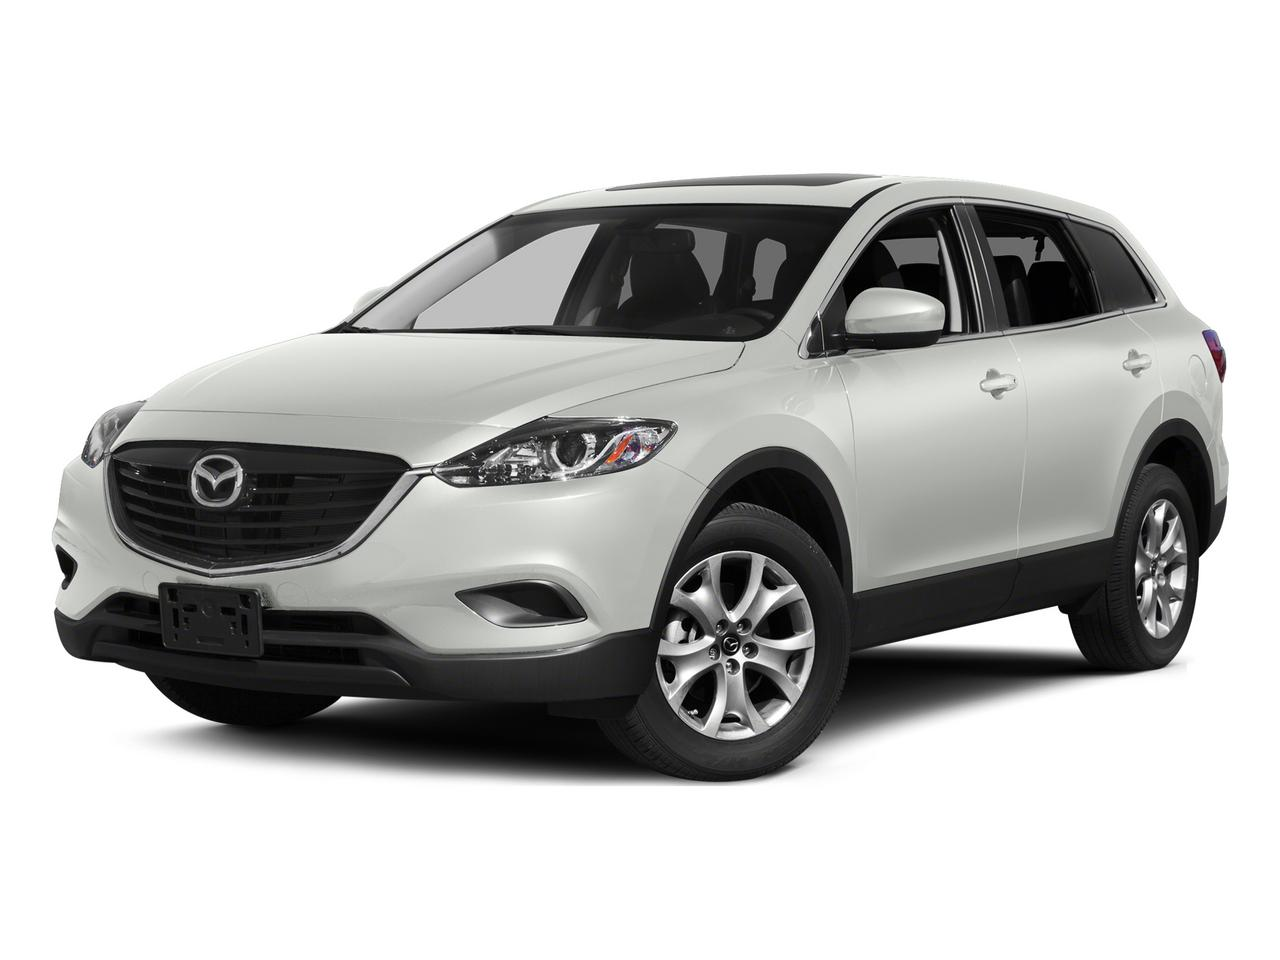 2015 Mazda CX-9 Vehicle Photo in Rockville, MD 20852